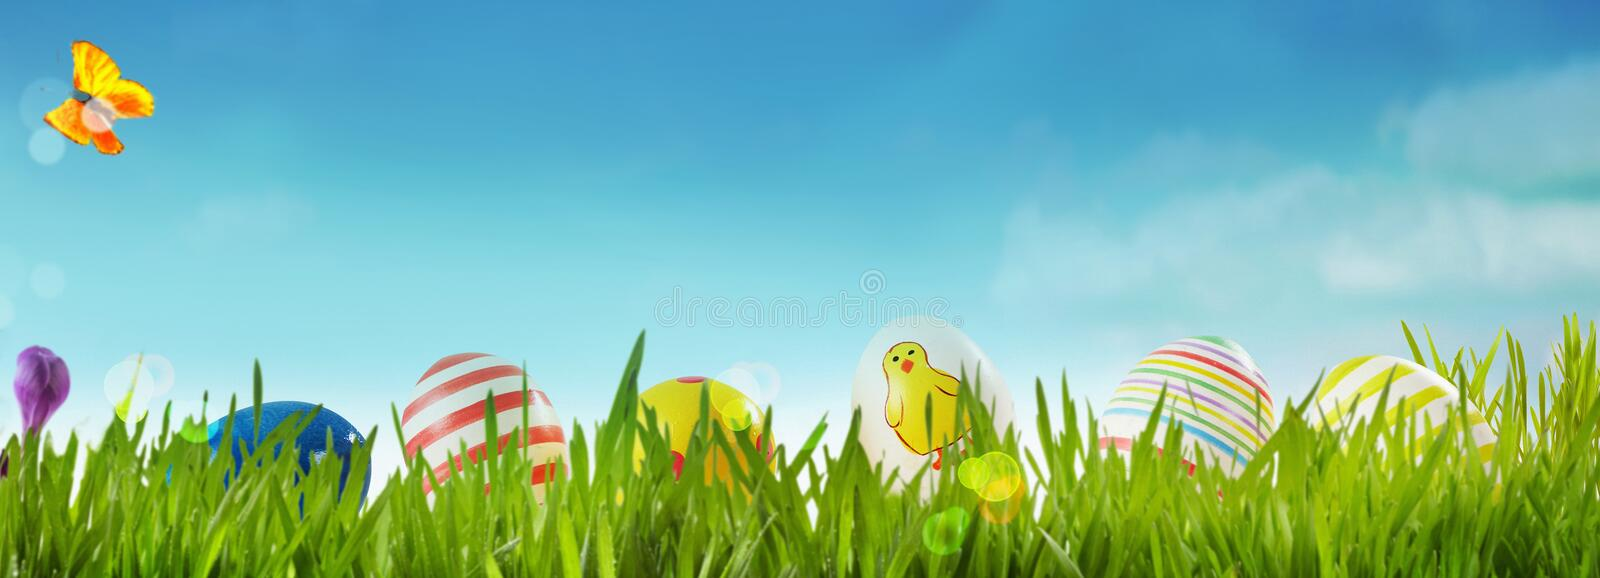 Spring banner with Easter eggs in a meadow royalty free stock images